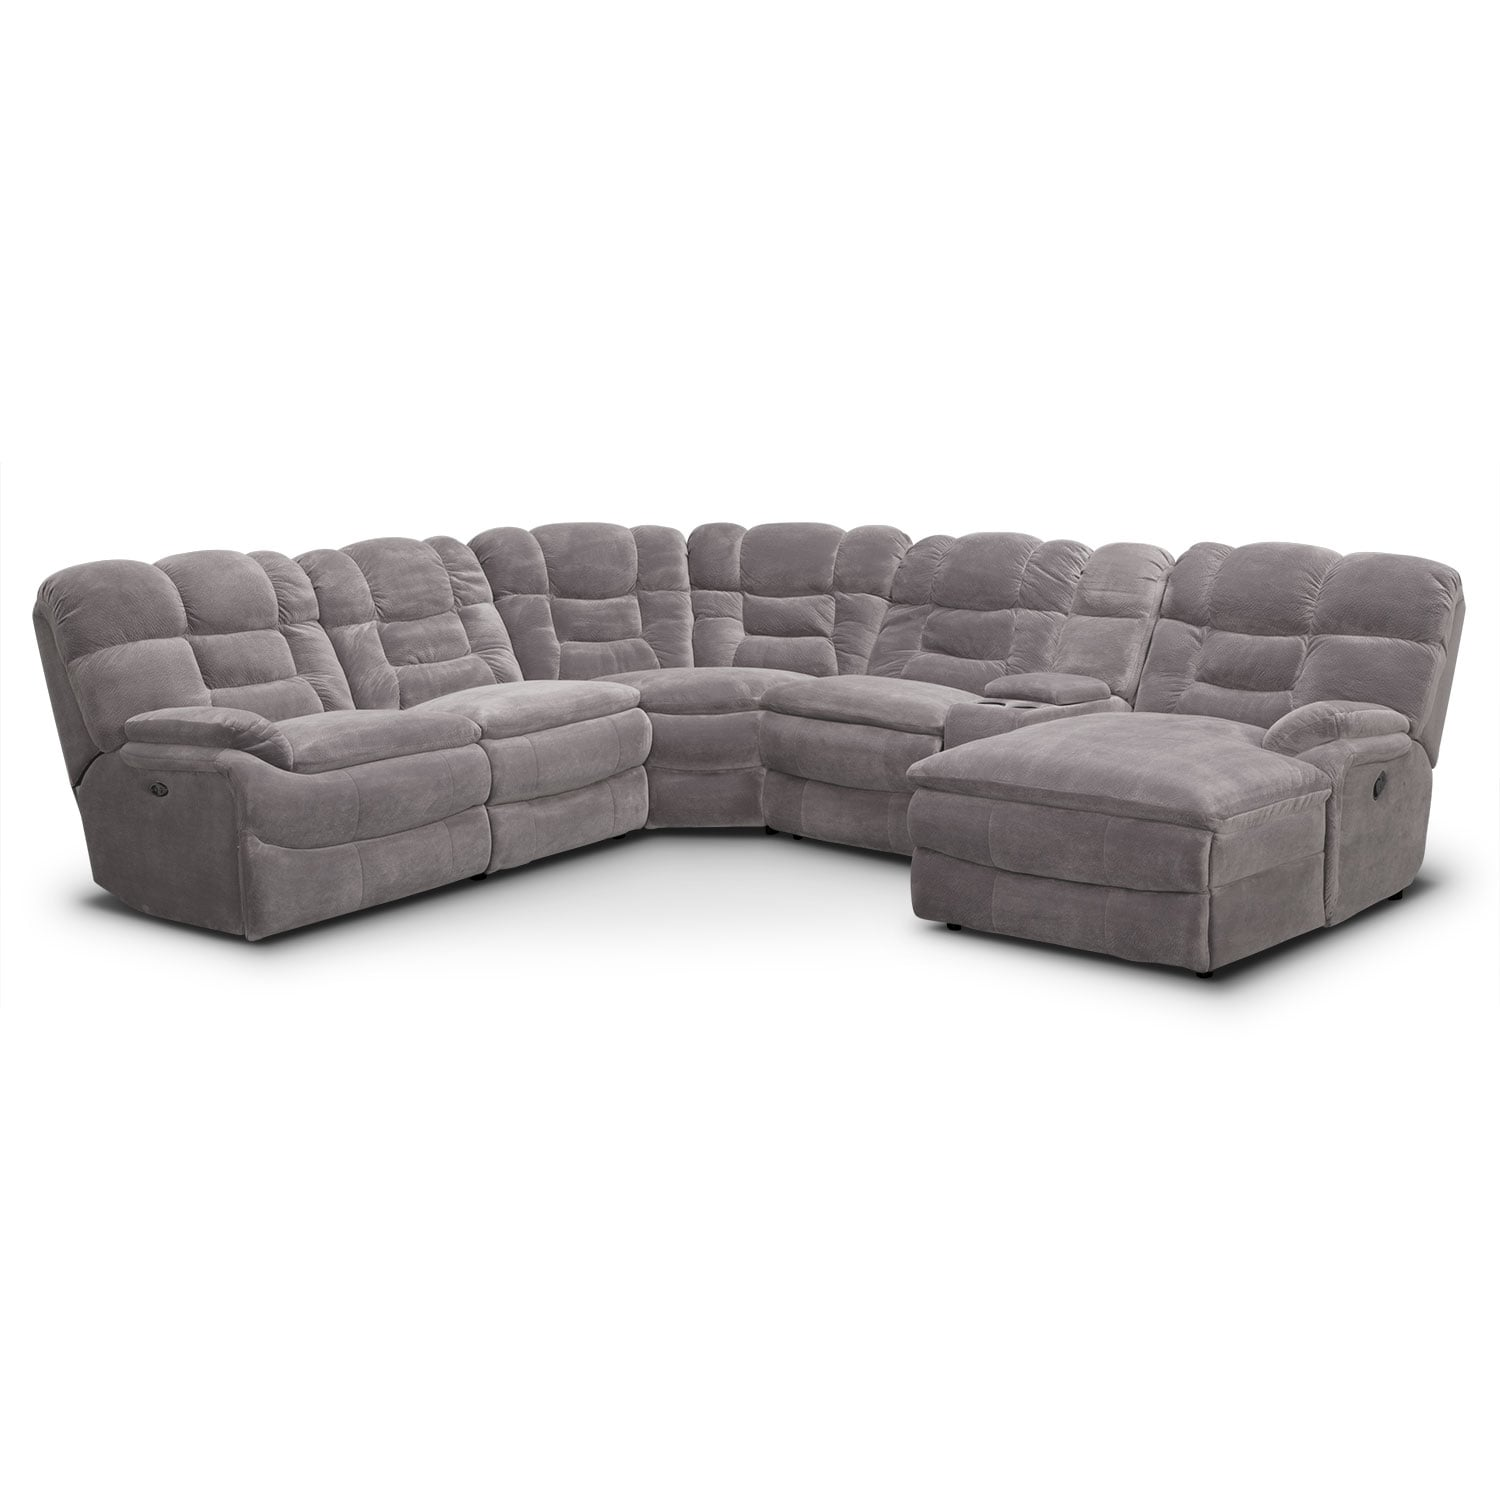 big softie 6 piece power reclining sectional with right facing chaise gray value city furniture. Black Bedroom Furniture Sets. Home Design Ideas